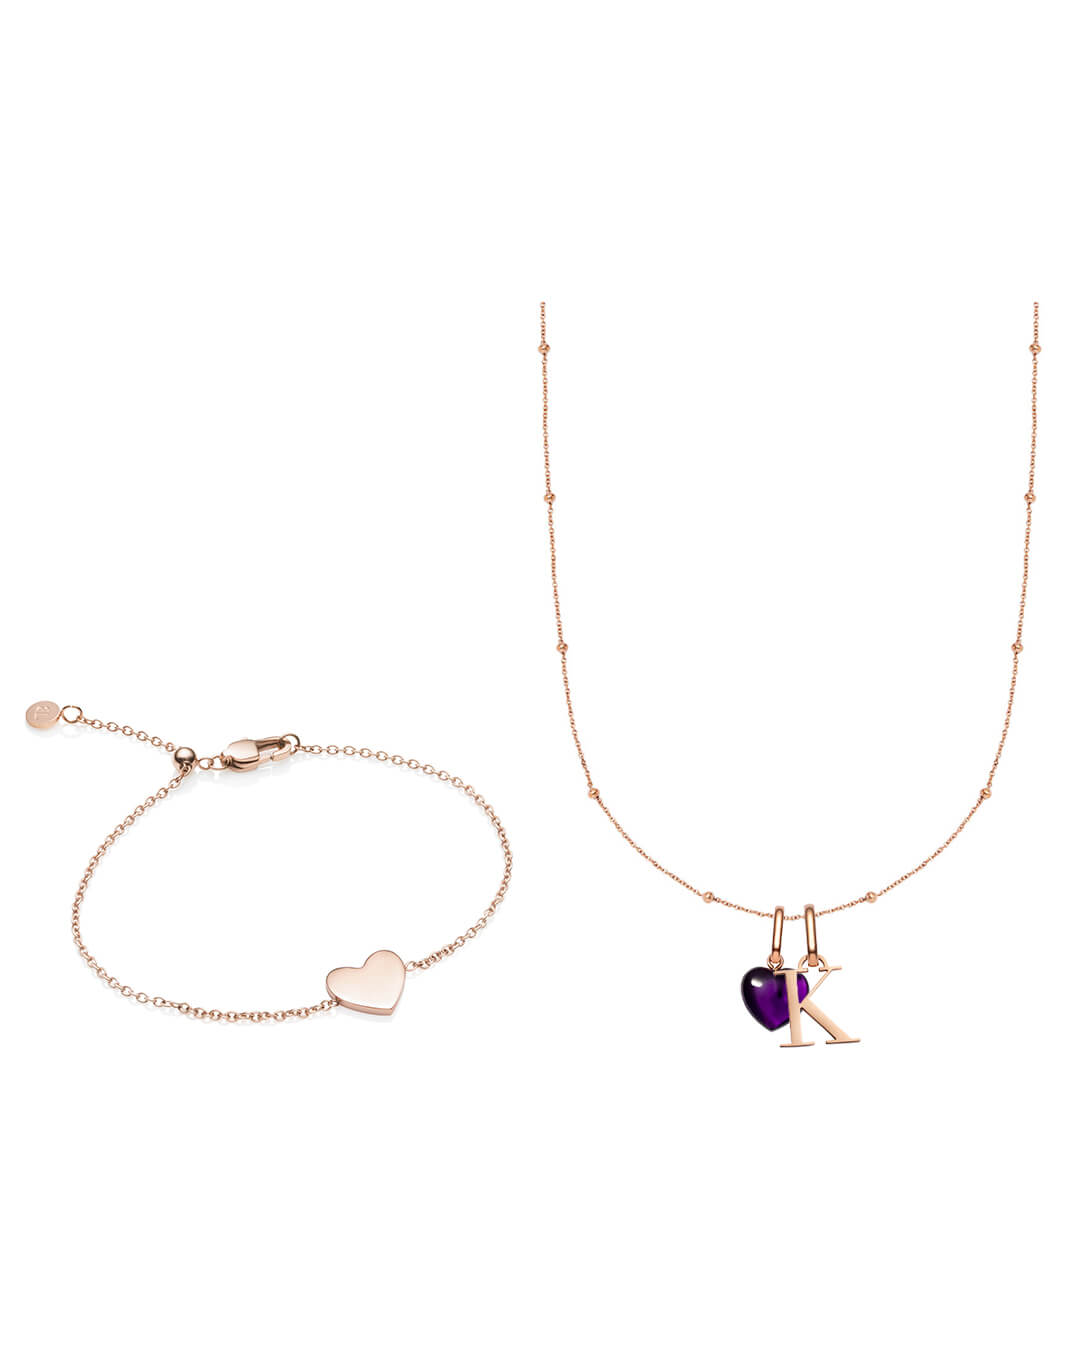 Letter & Birthstone Sphere Chain Gift Set